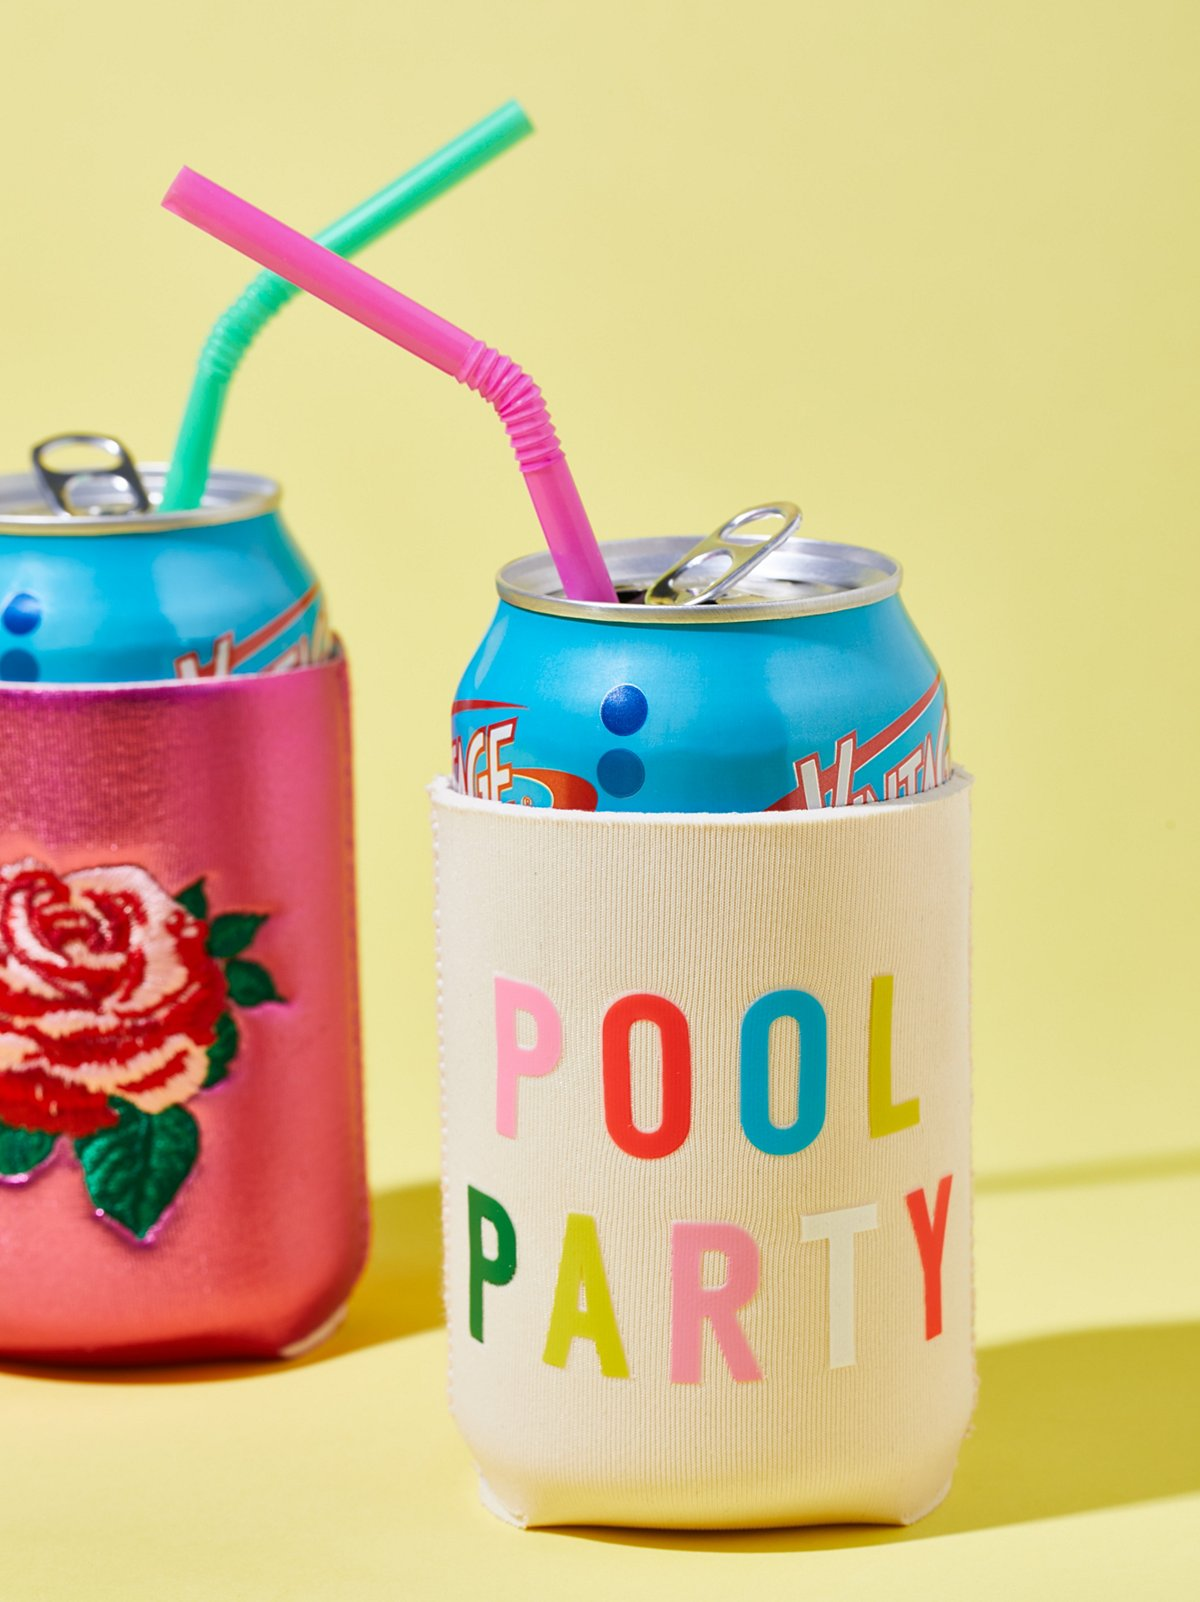 Pool Party Drink Sleeve